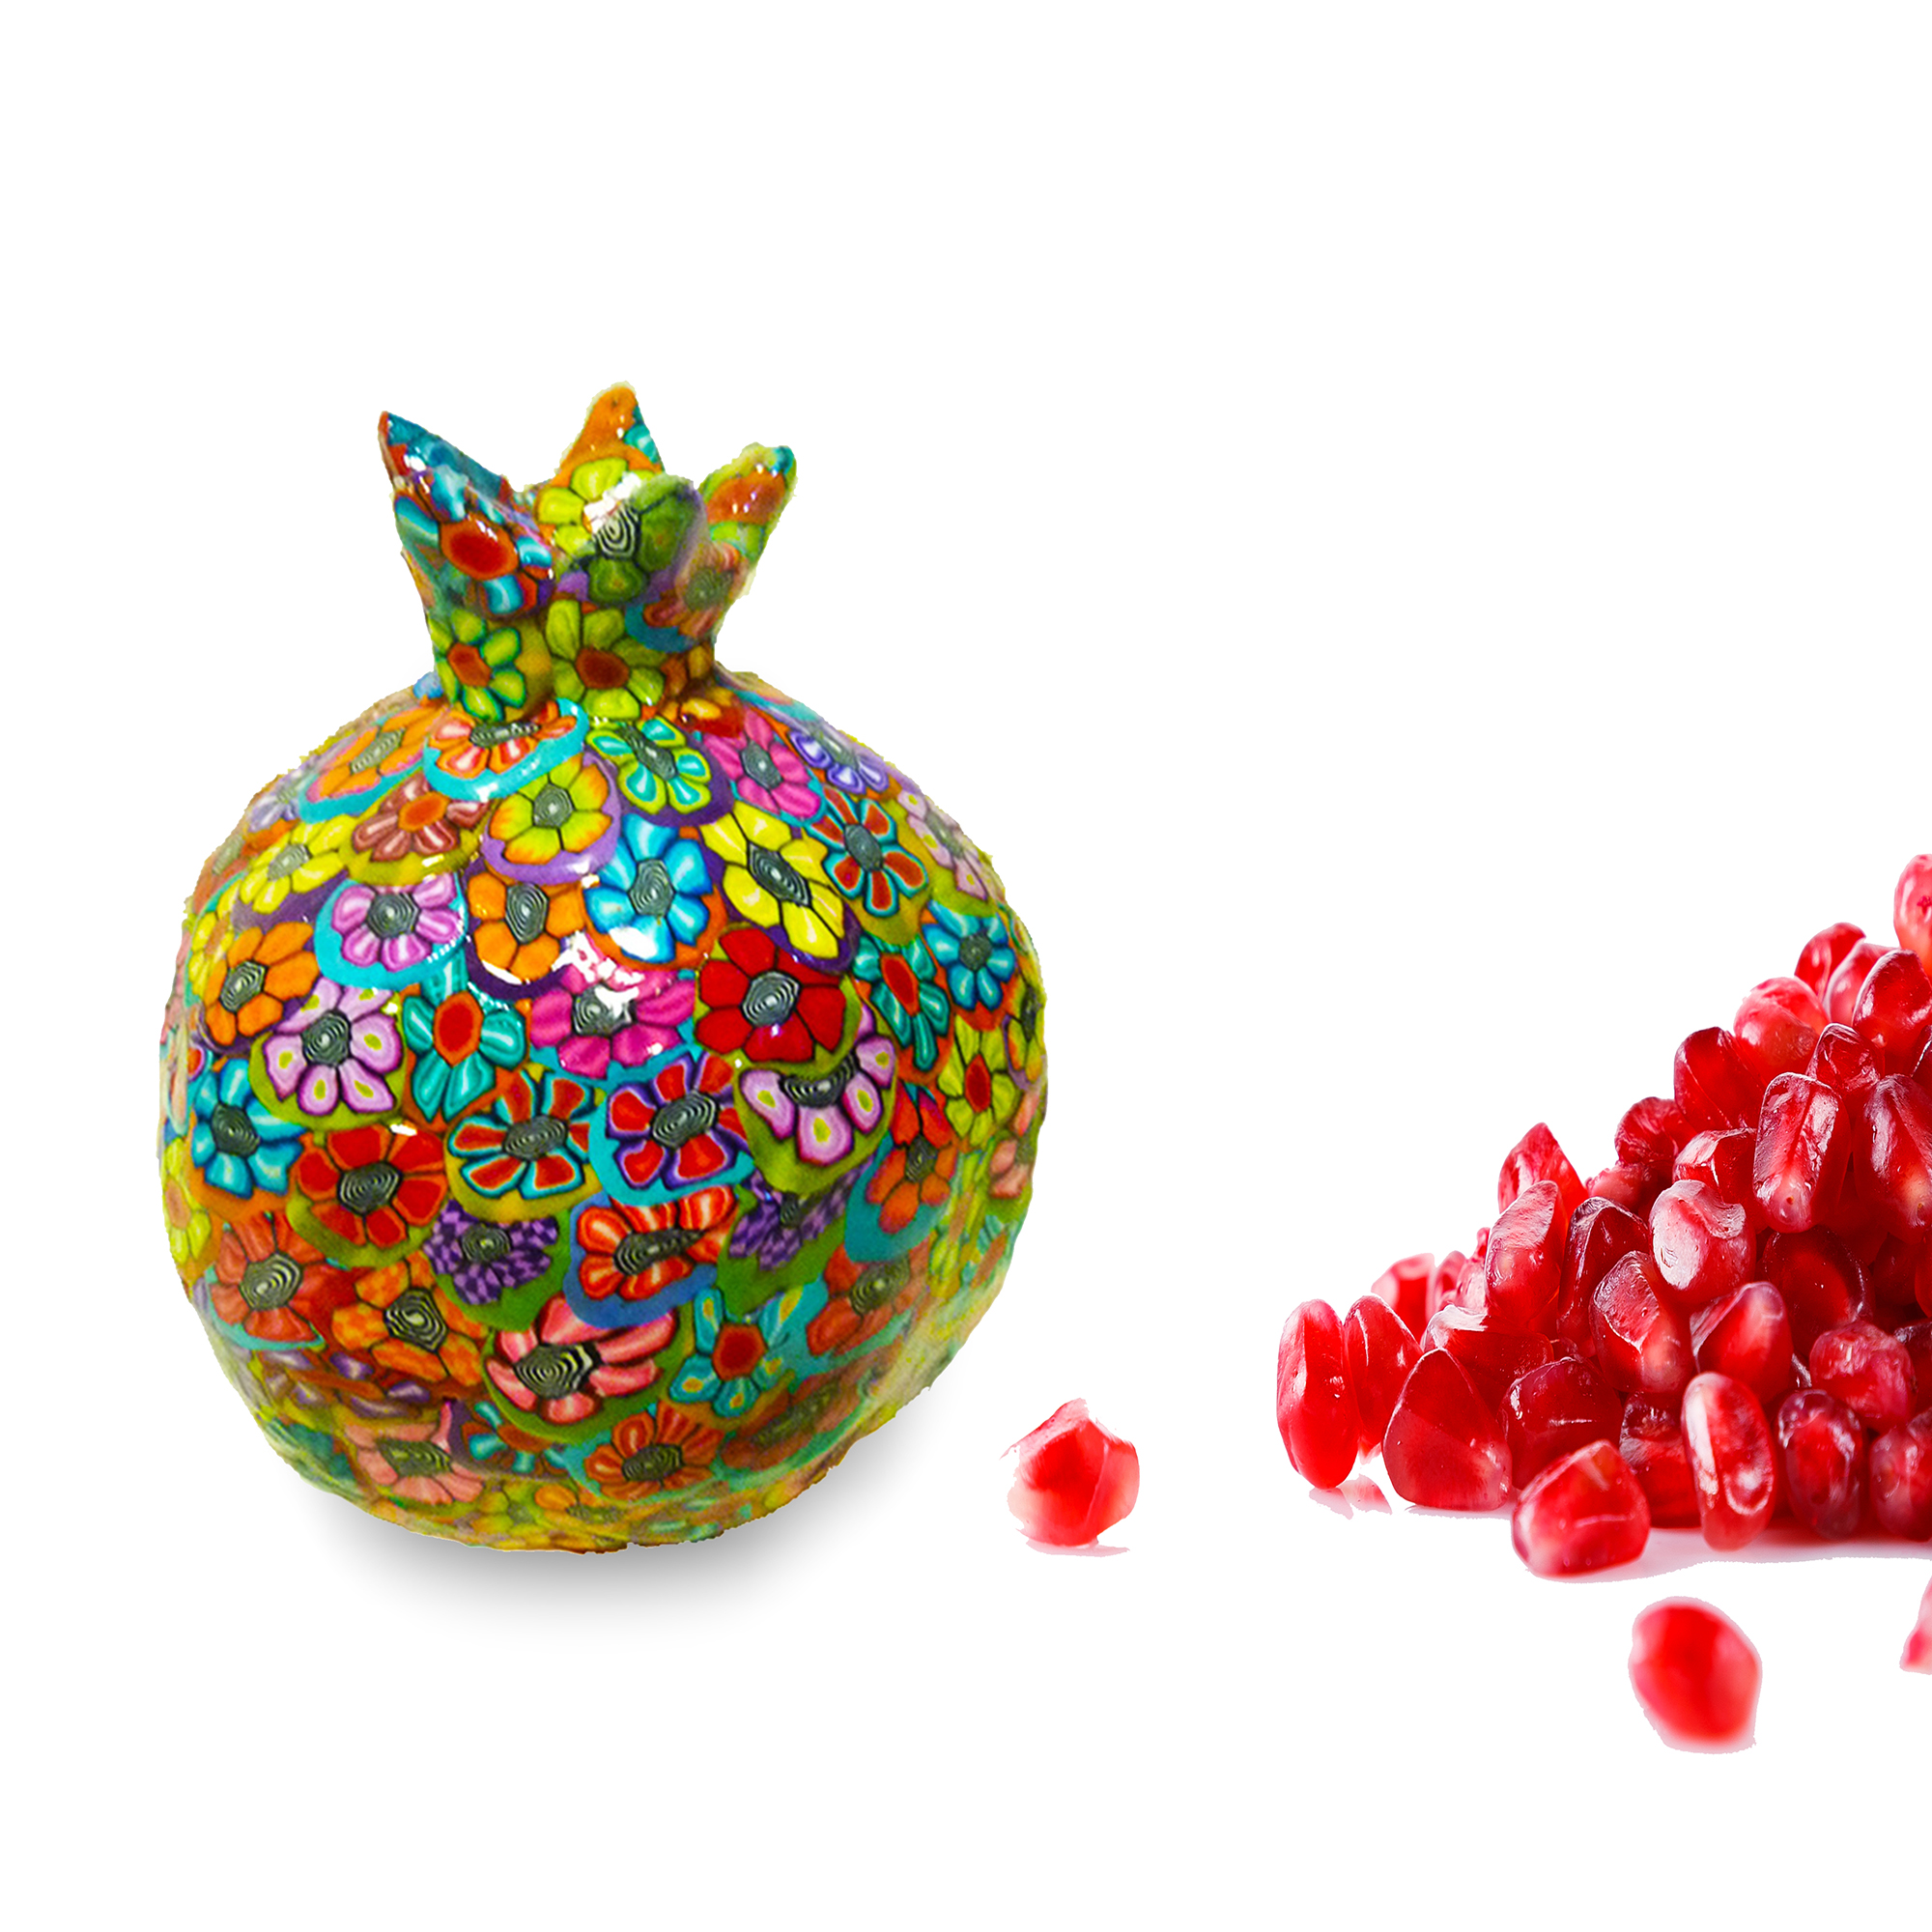 Pomegranate, Pomegranate Decor, Pomegranate Art, Pomegranate Sculpture, Jewish Gifts